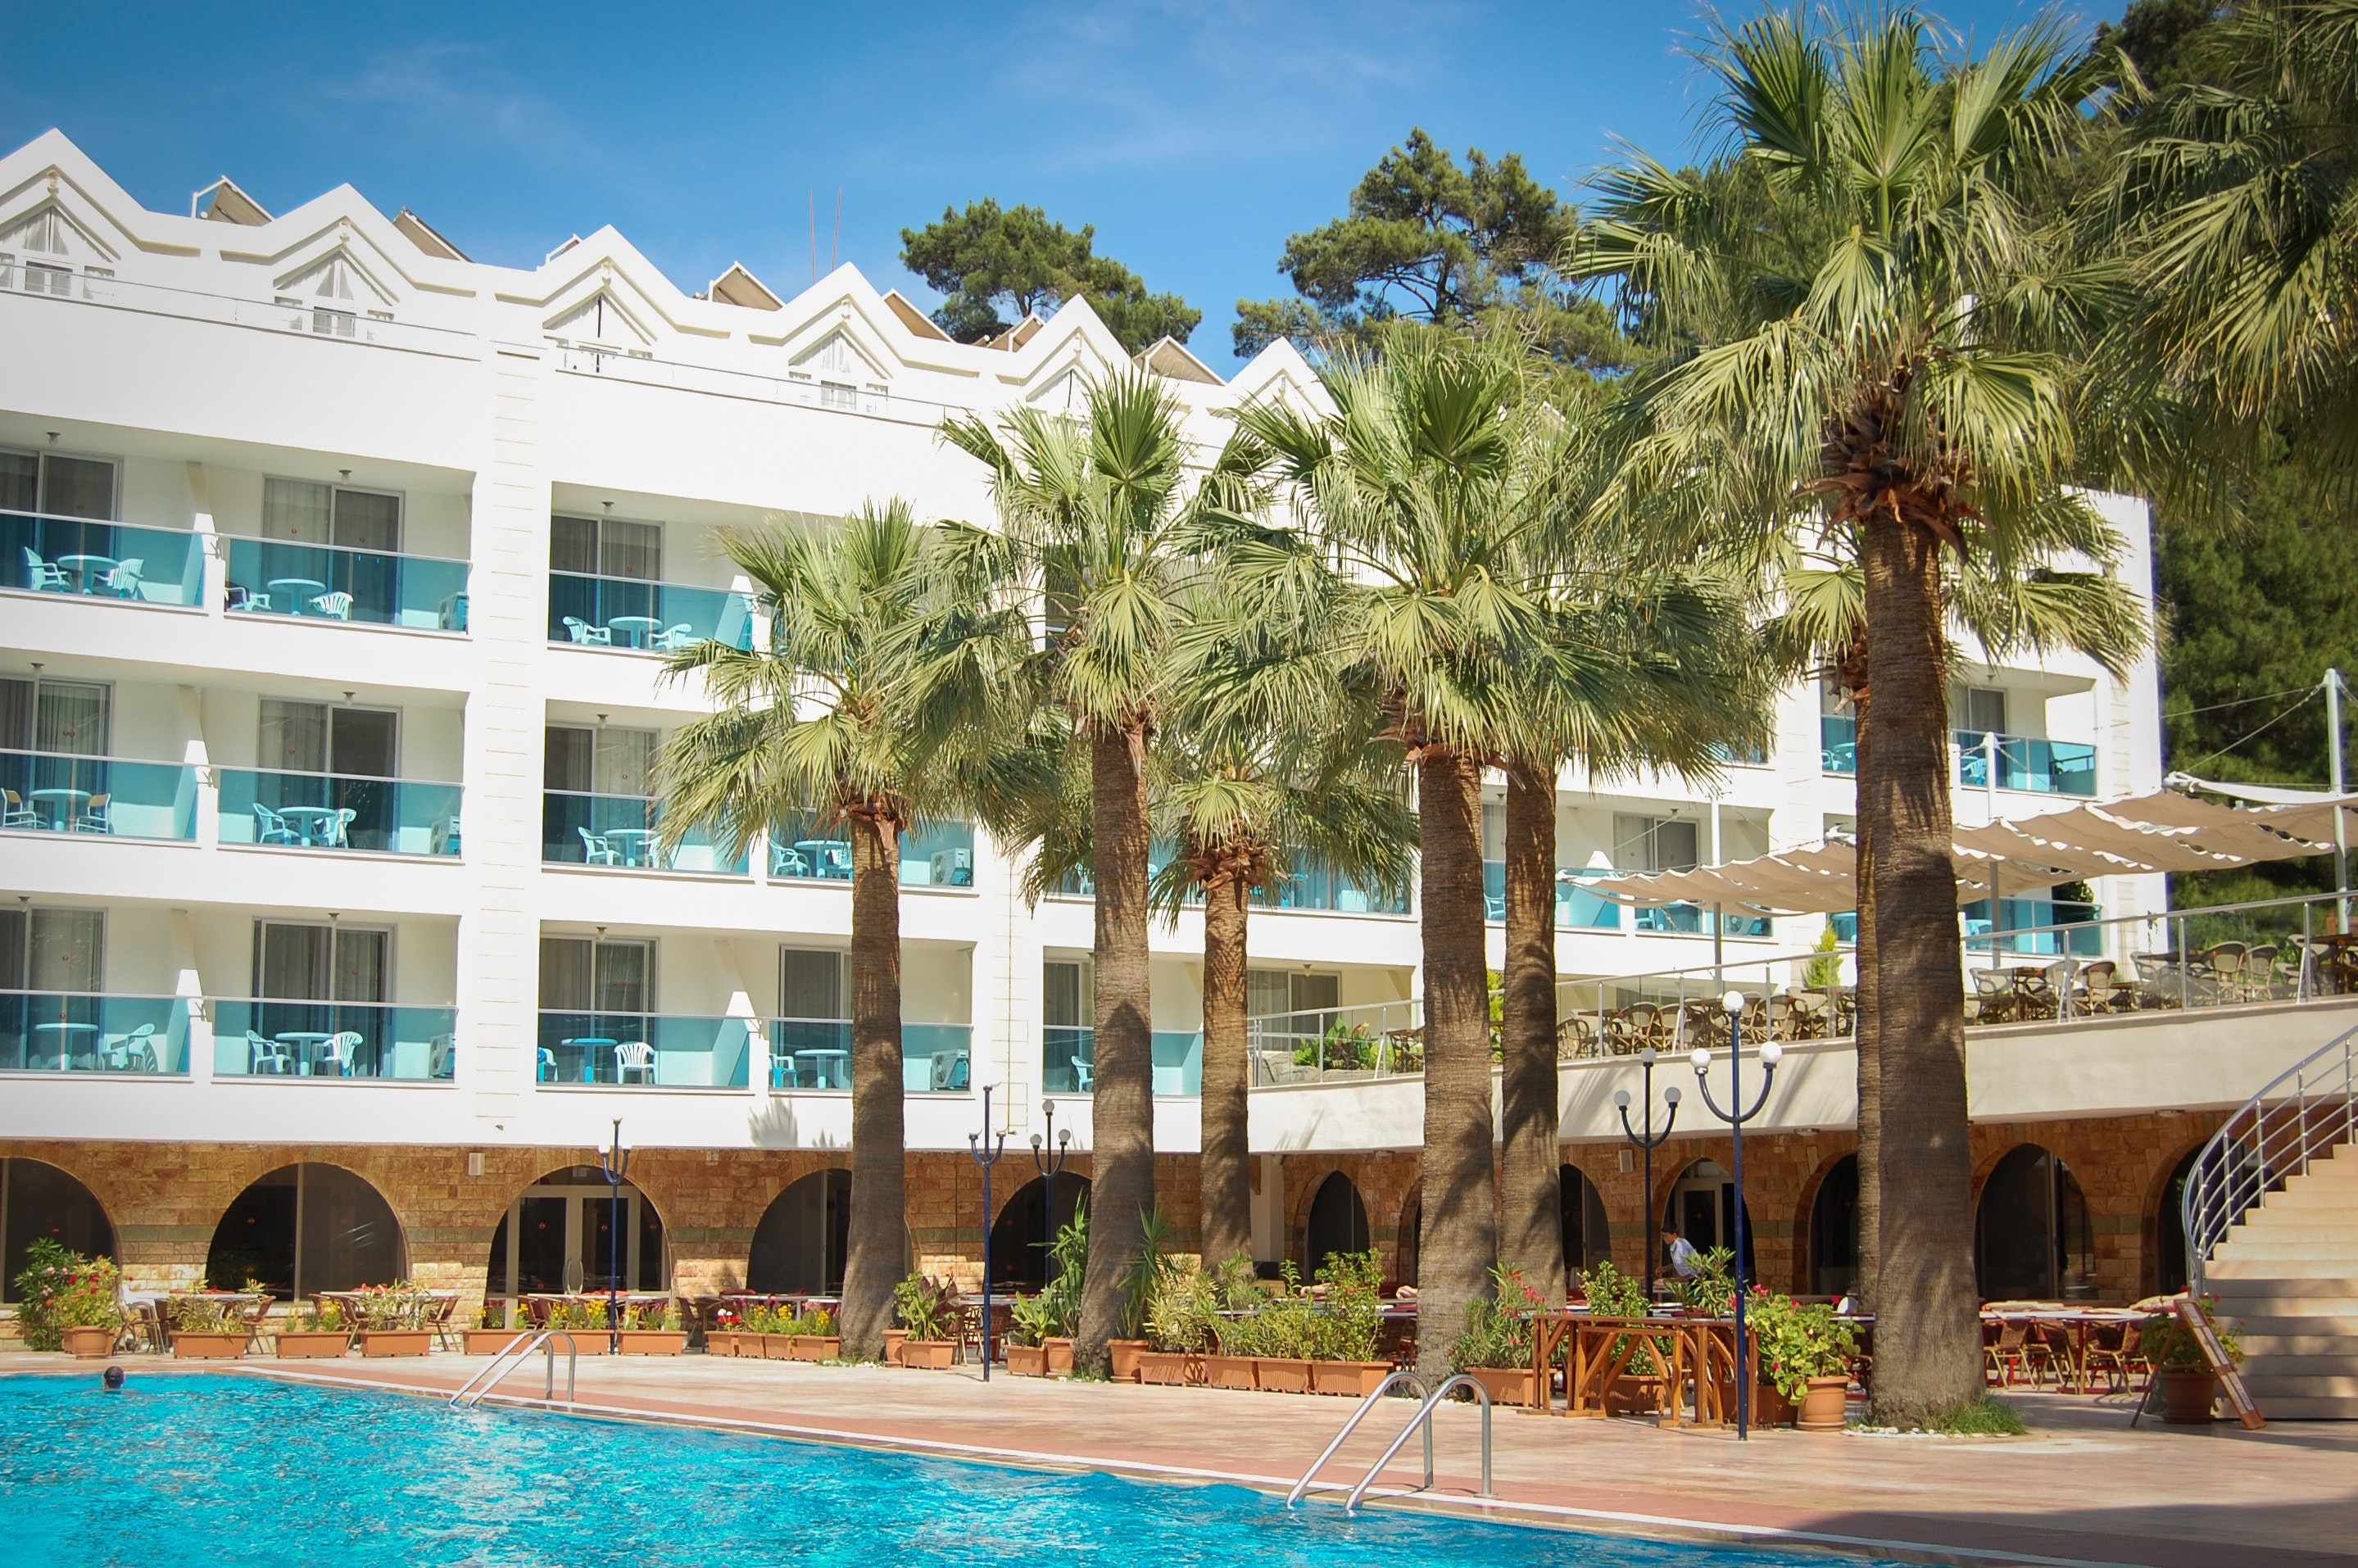 holiday-holidays-hotel-261395